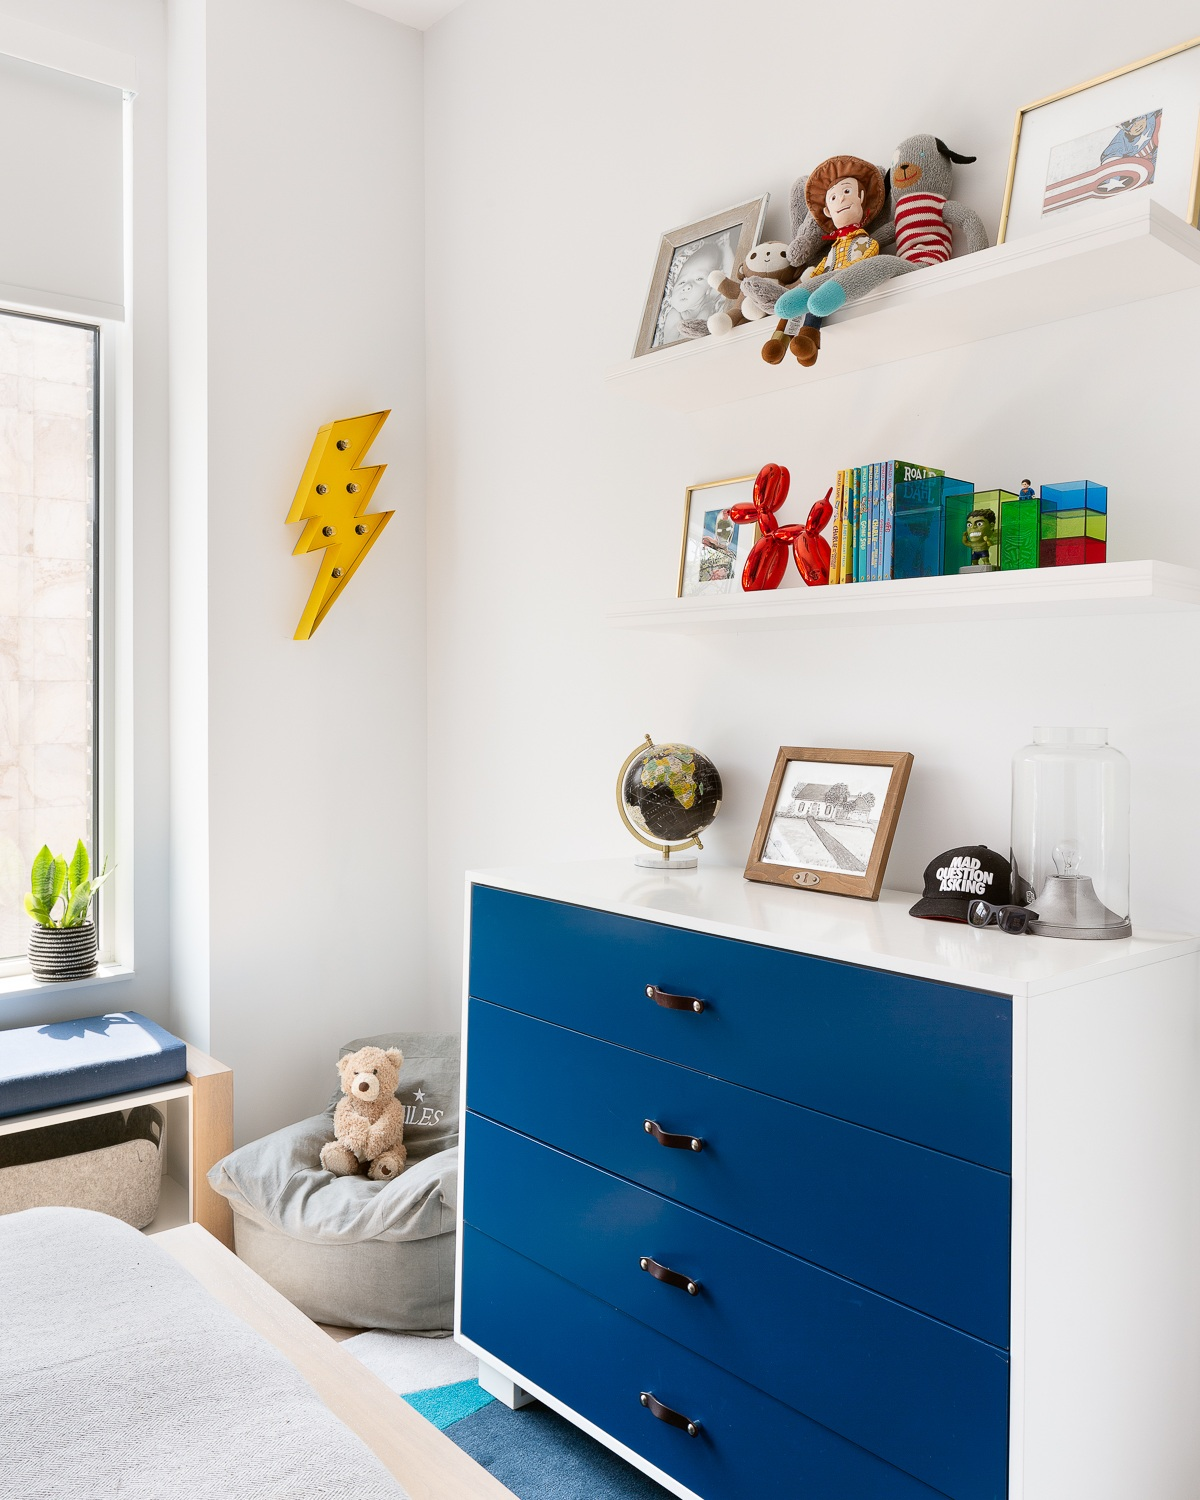 Beautiful custom dresser with leather pulls create much needed storage and style on the other side of the room against a simple painted wall. The accent lightning bolt marquee light brings the super-hero theme and floating shelves above create space for rotating gallery of art, toys and of course books. Felt baskets provide easy access to toys, blankets and more books for our little reader.